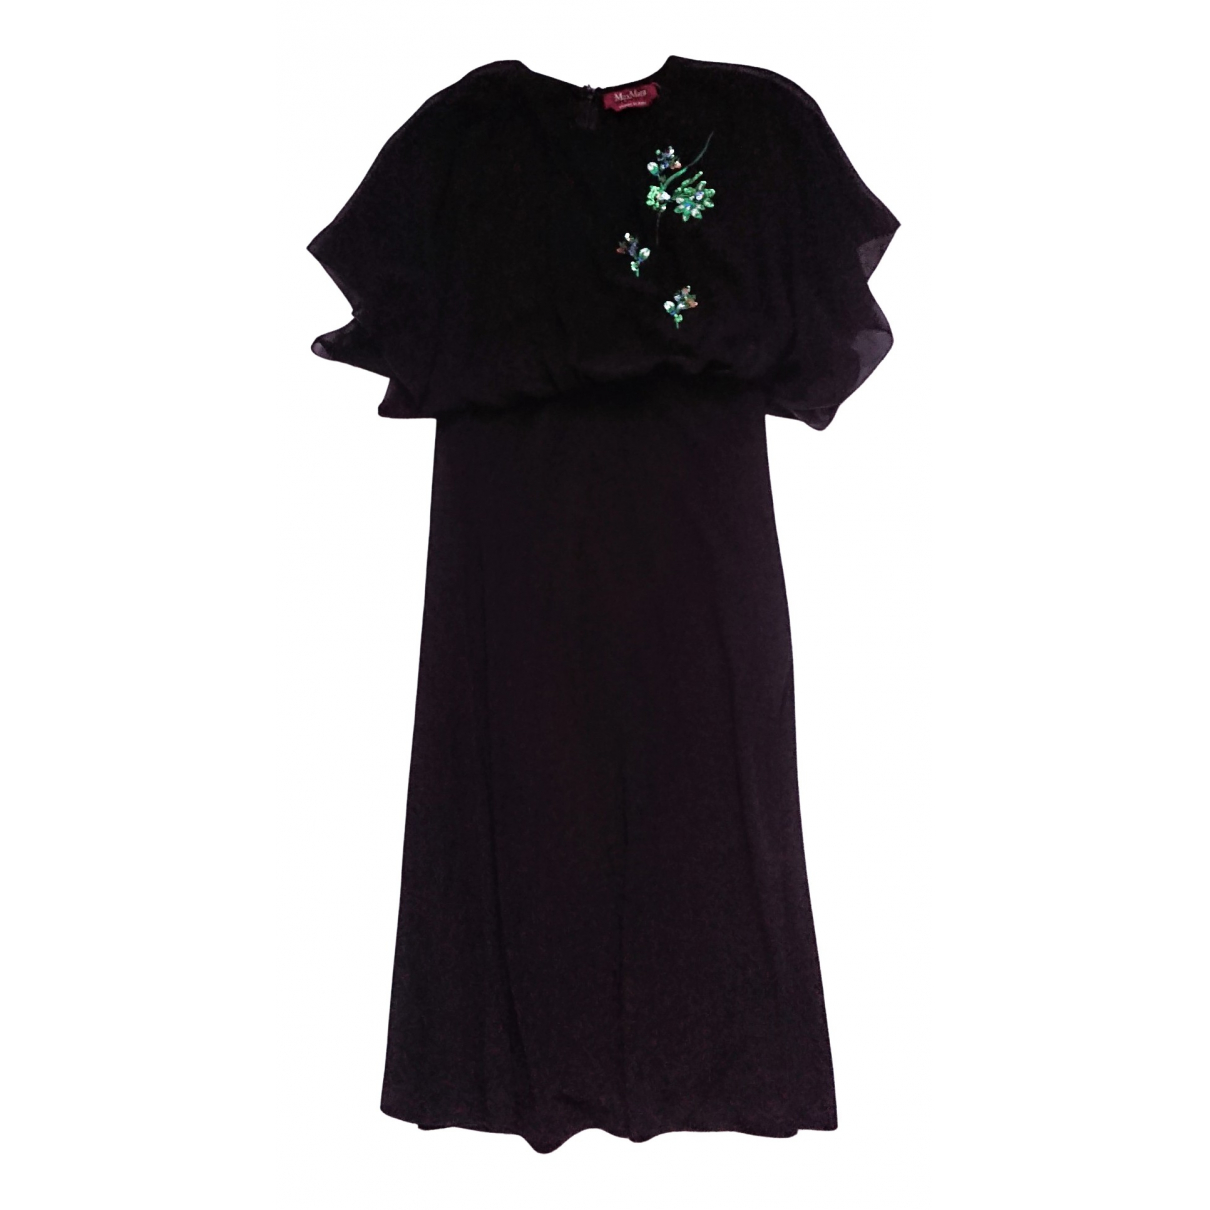 Max Mara \N Black dress for Women M International